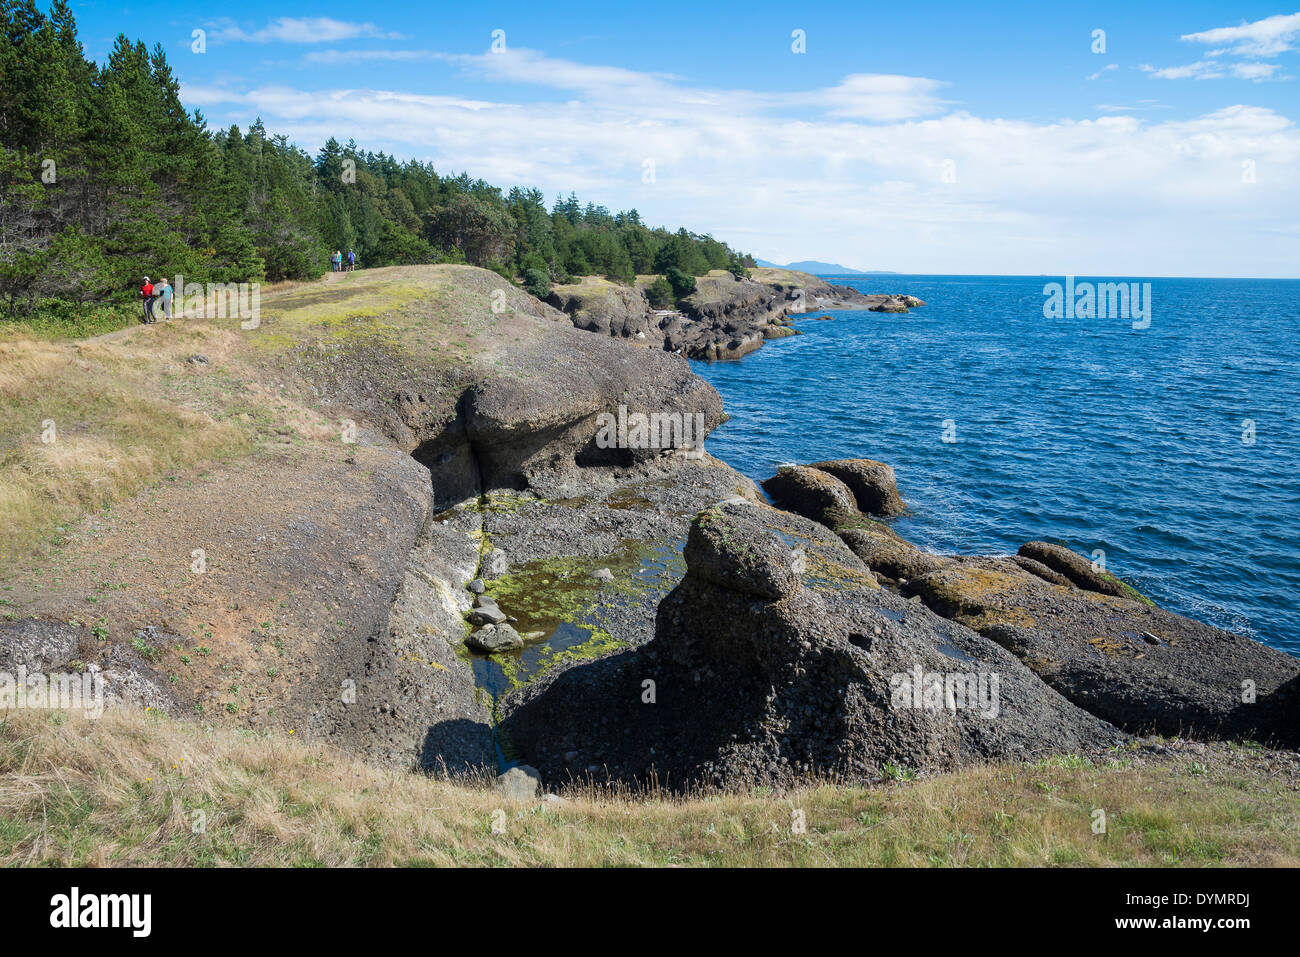 The bluffs, Helliwell Provincial Park, Hornby Island, British Columbia, Canada - Stock Image